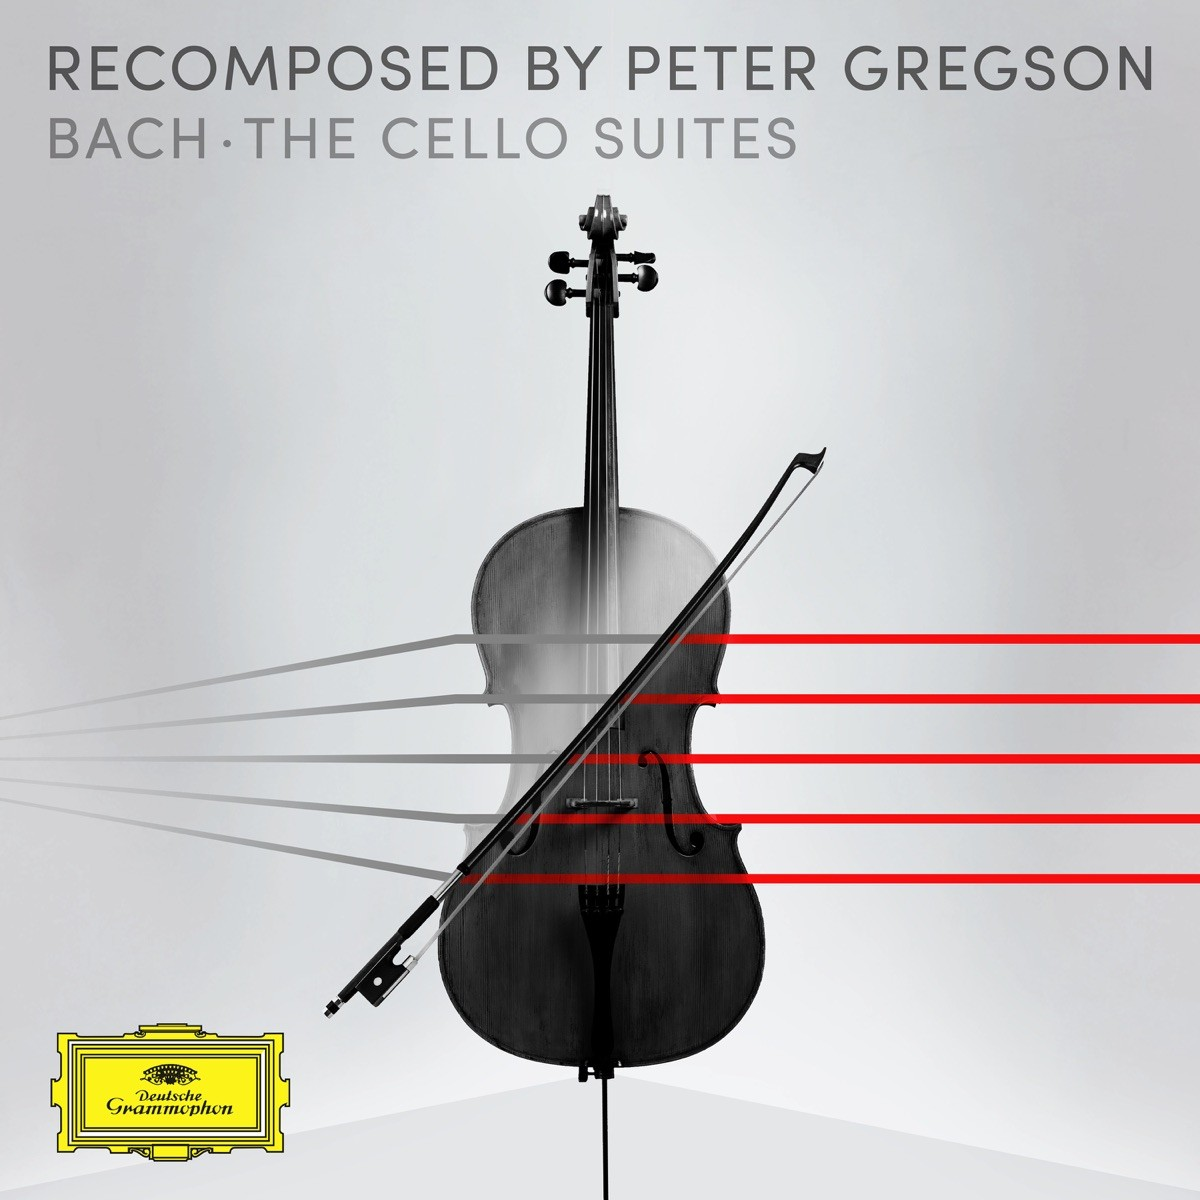 Peter Gregson - Bach: The Cello Suites - Recomposed by CD - 002894835529